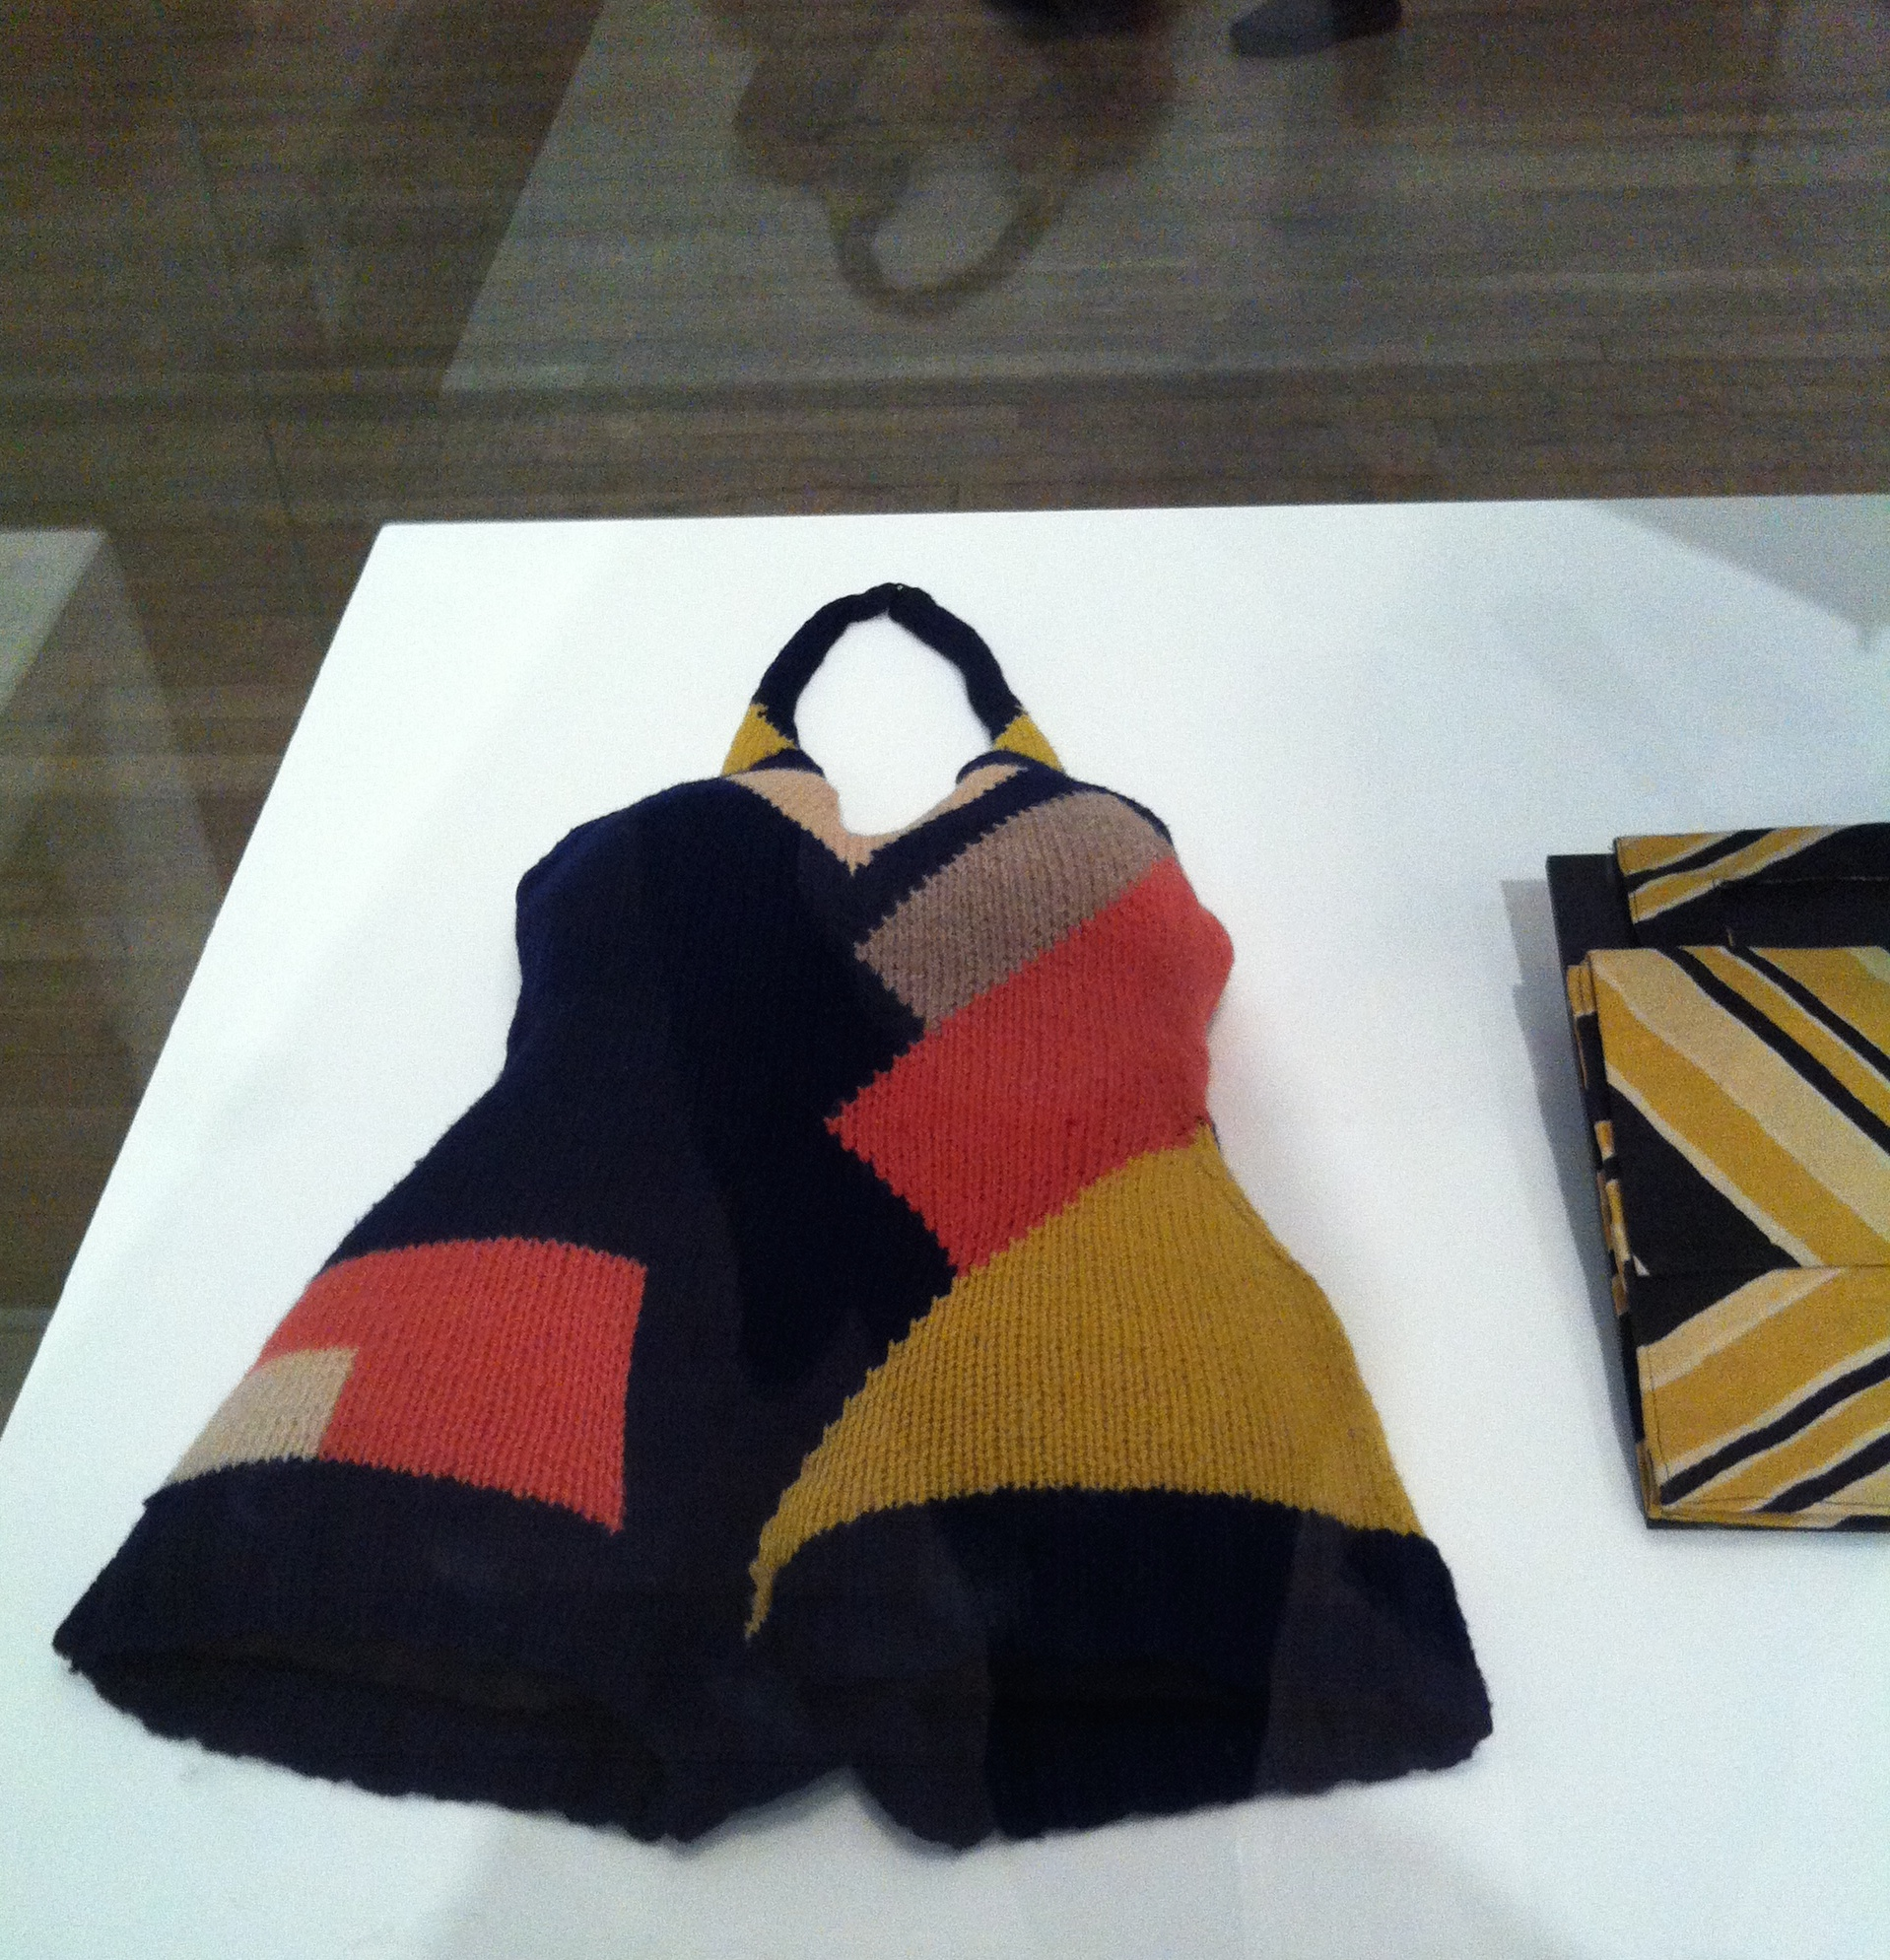 Sonia Delaunay knitted bathing suit-105